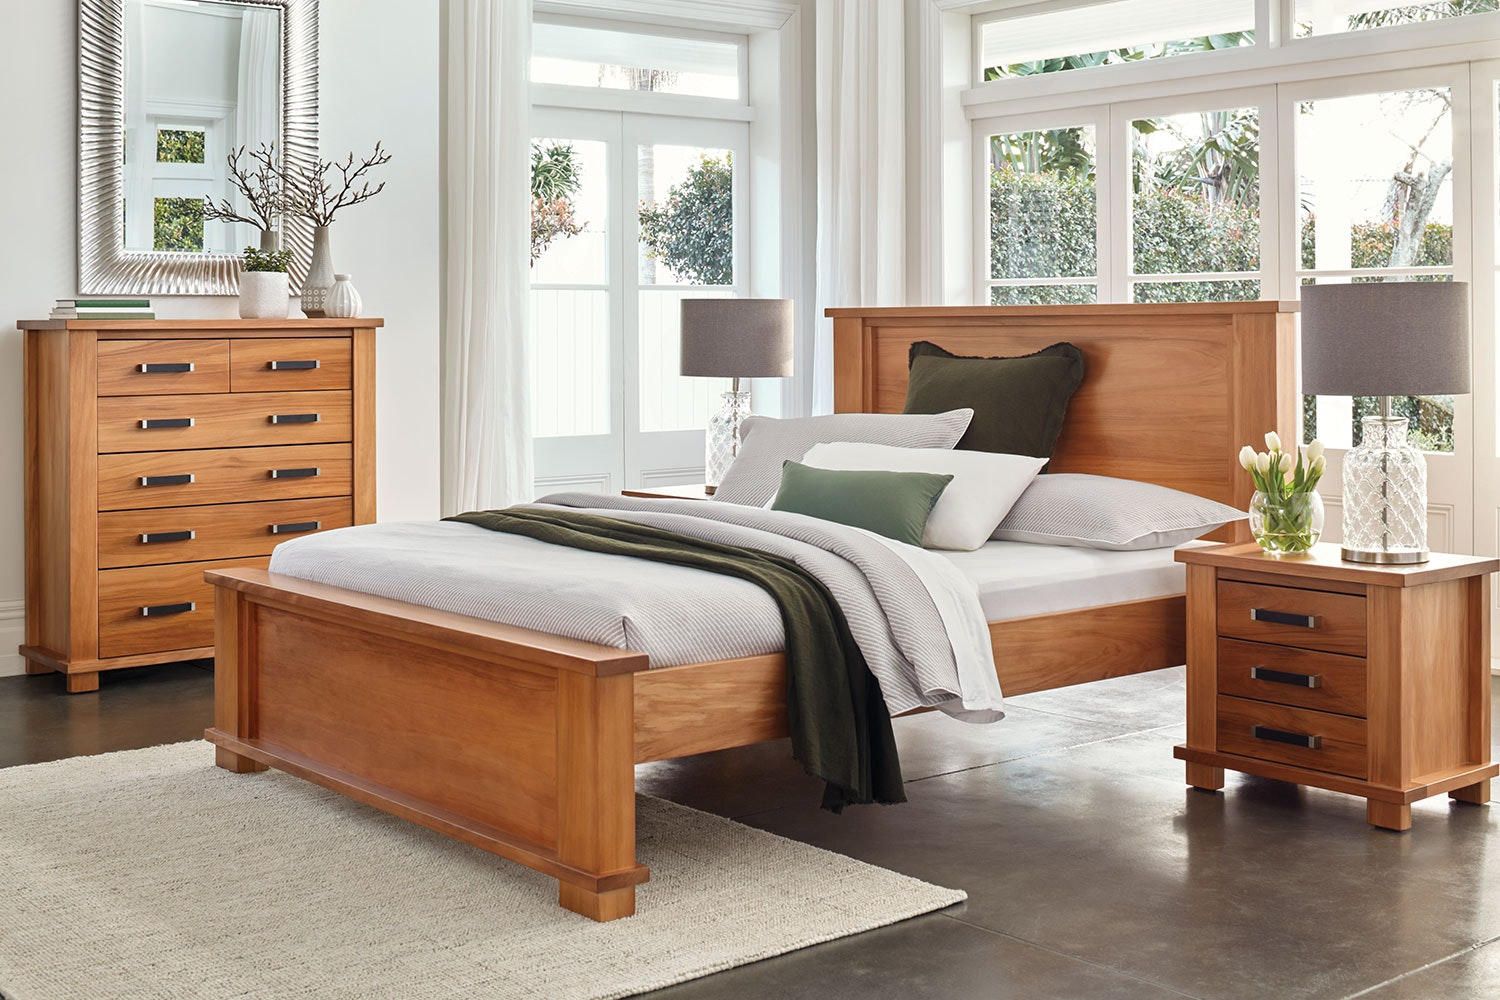 Huntsman Low Foot Queen Bed Frame by Ezirest Furniture